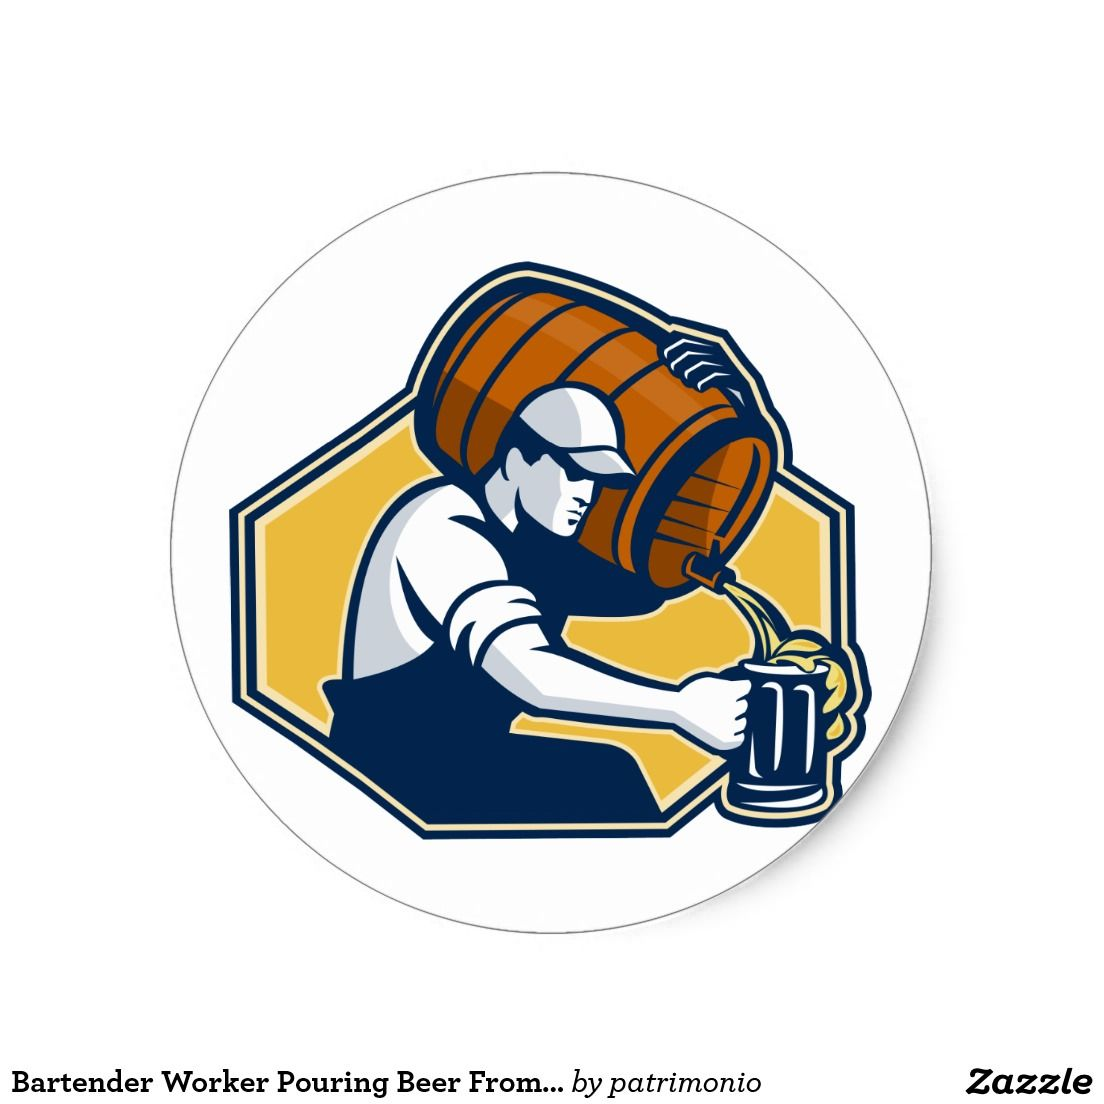 Bartender Worker Pouring Beer From Barrel To Mug Classic.